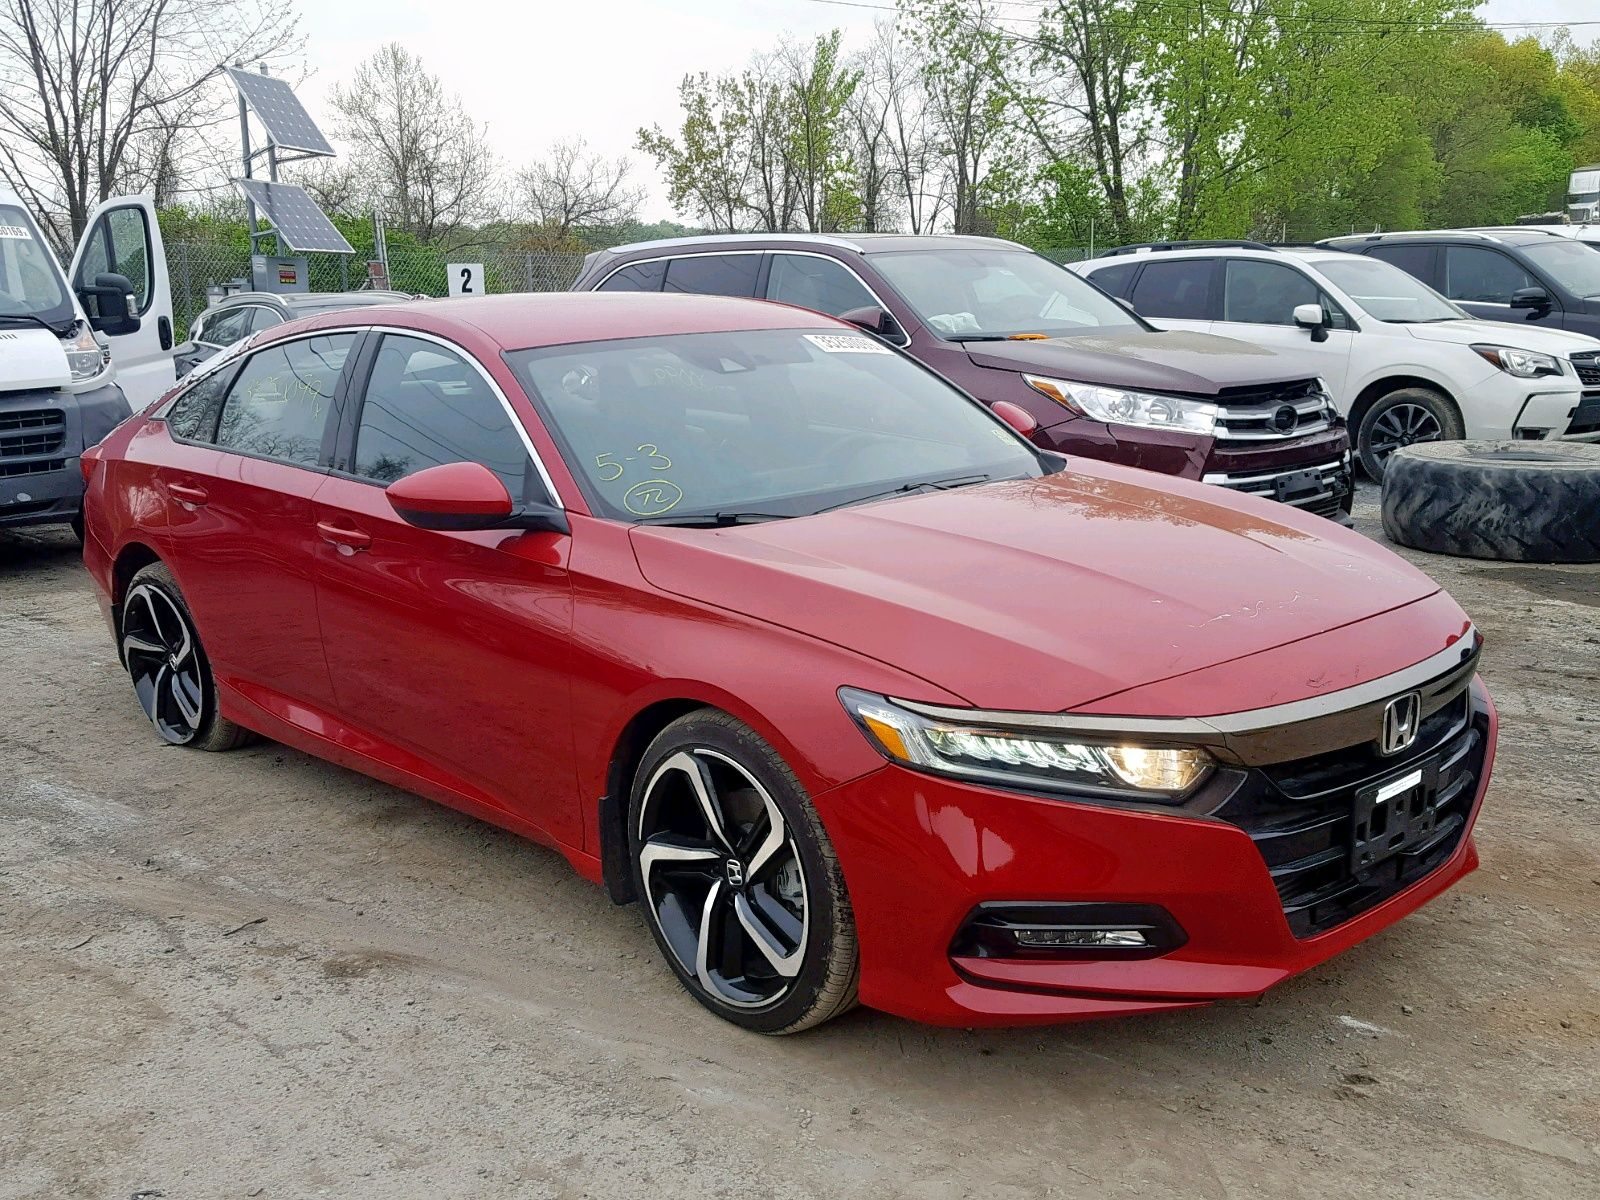 Pin by Amirahhair on cars (With images) Honda accord